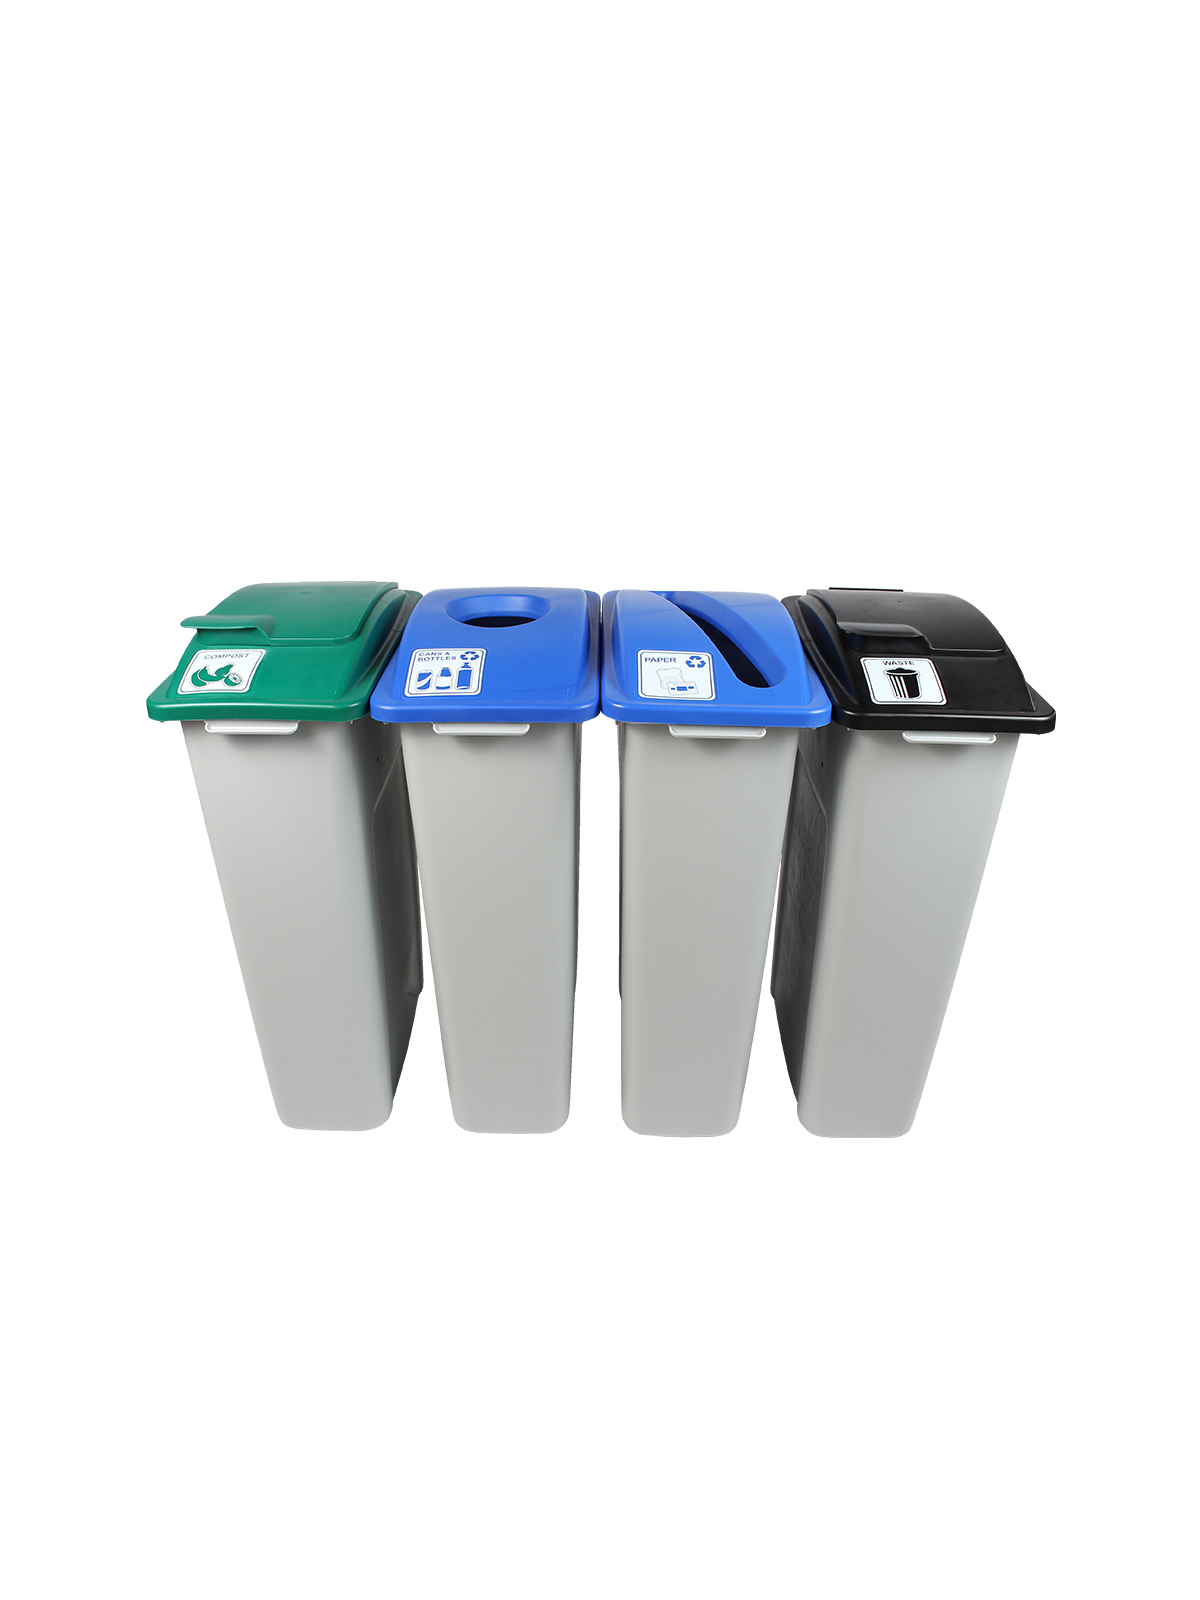 WASTE WATCHER - Quad - Cans & Bottles-Paper-Organics-Waste - Circle-Slot-Solid Lift-Solid Lift - Grey-Blue-Blue-Green-Black